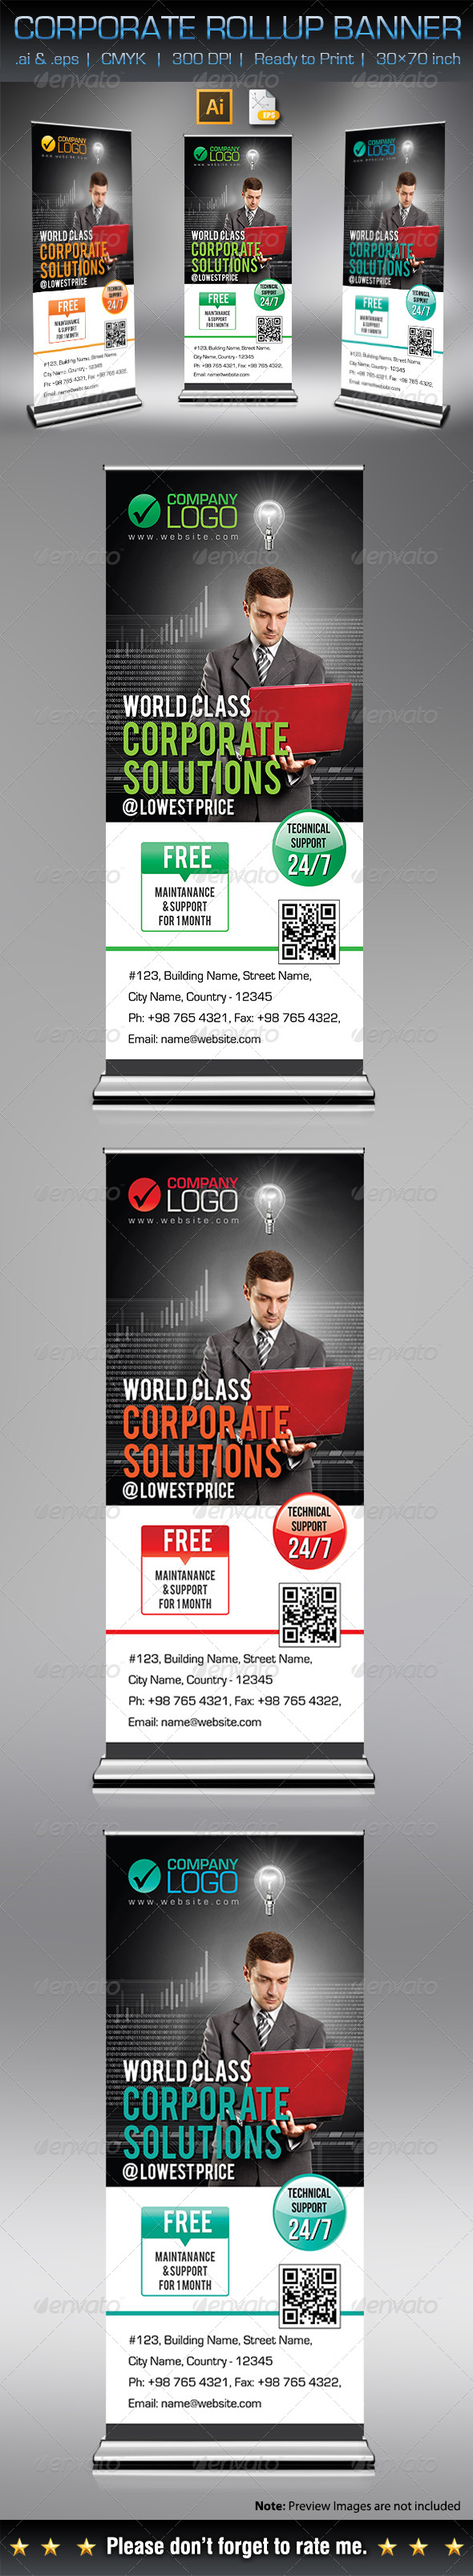 GraphicRiver Corporate Rollup Banner 6996423